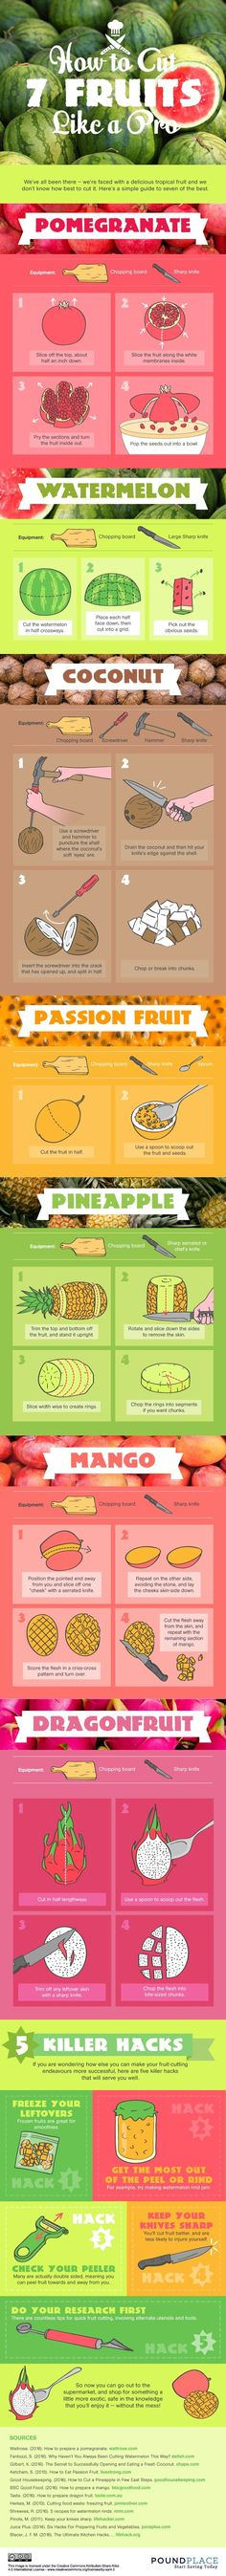 Slicing an apple or a tomato is easy enough, but serving up passion fruit or dragon fruit is a bit trickier. So is finding the most effective way to cut open a coconut, or get every last seed from a pomegranate (although we have you covered there.) Luckily, this handy graphic has tips for seven different fruits you can put to use right away.